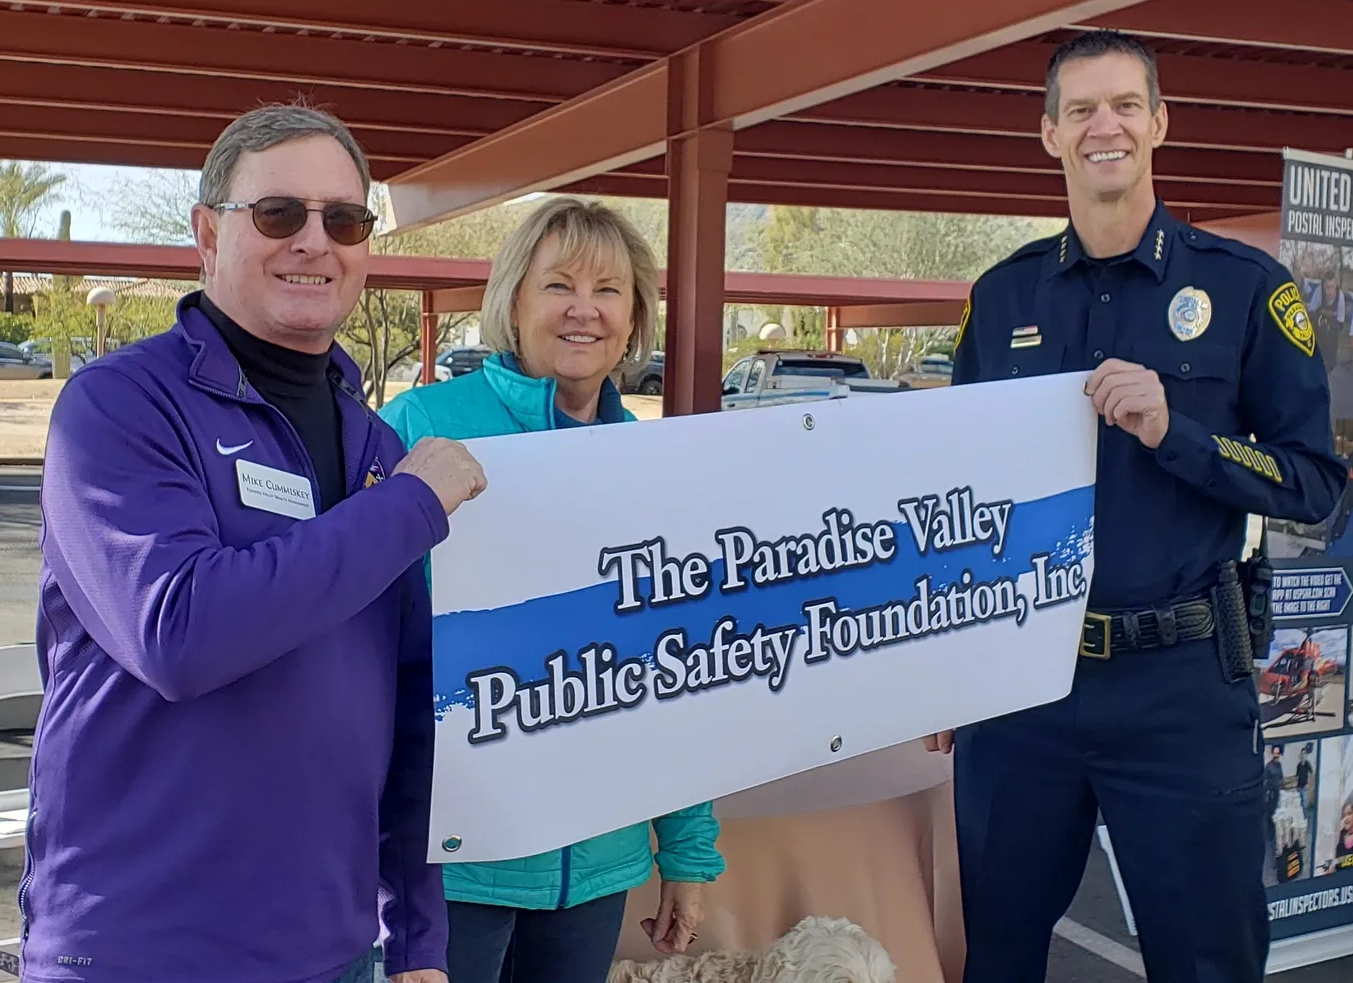 Public Safety Foundation